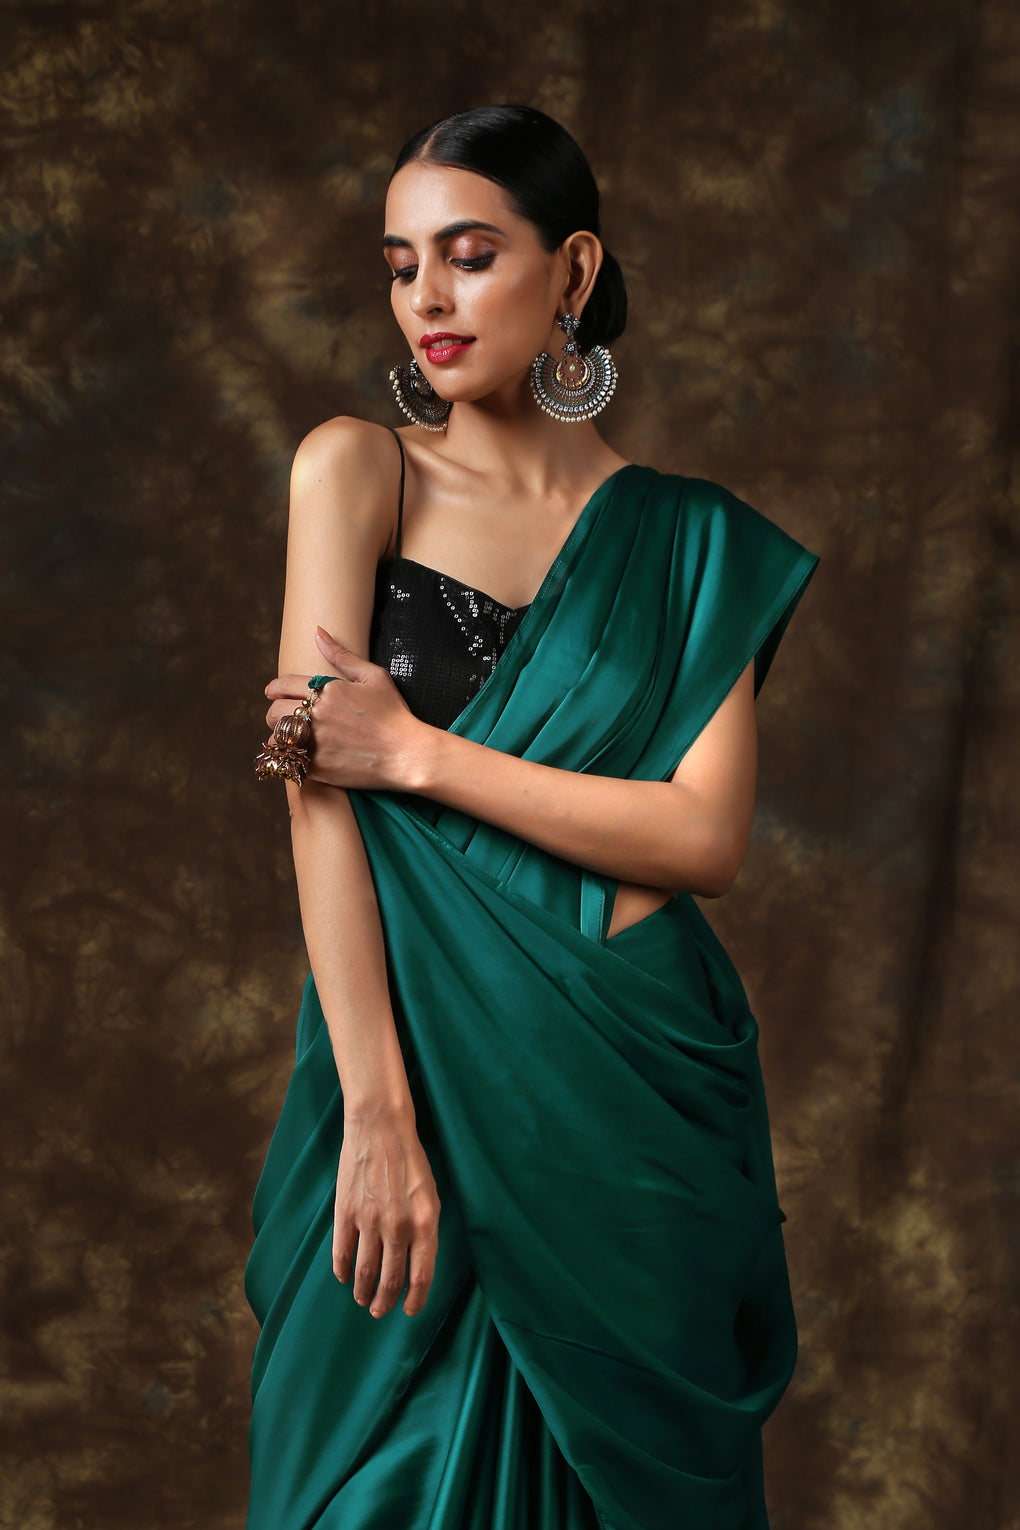 Rich Emerald Green Satin Saree with Bronze Pendants